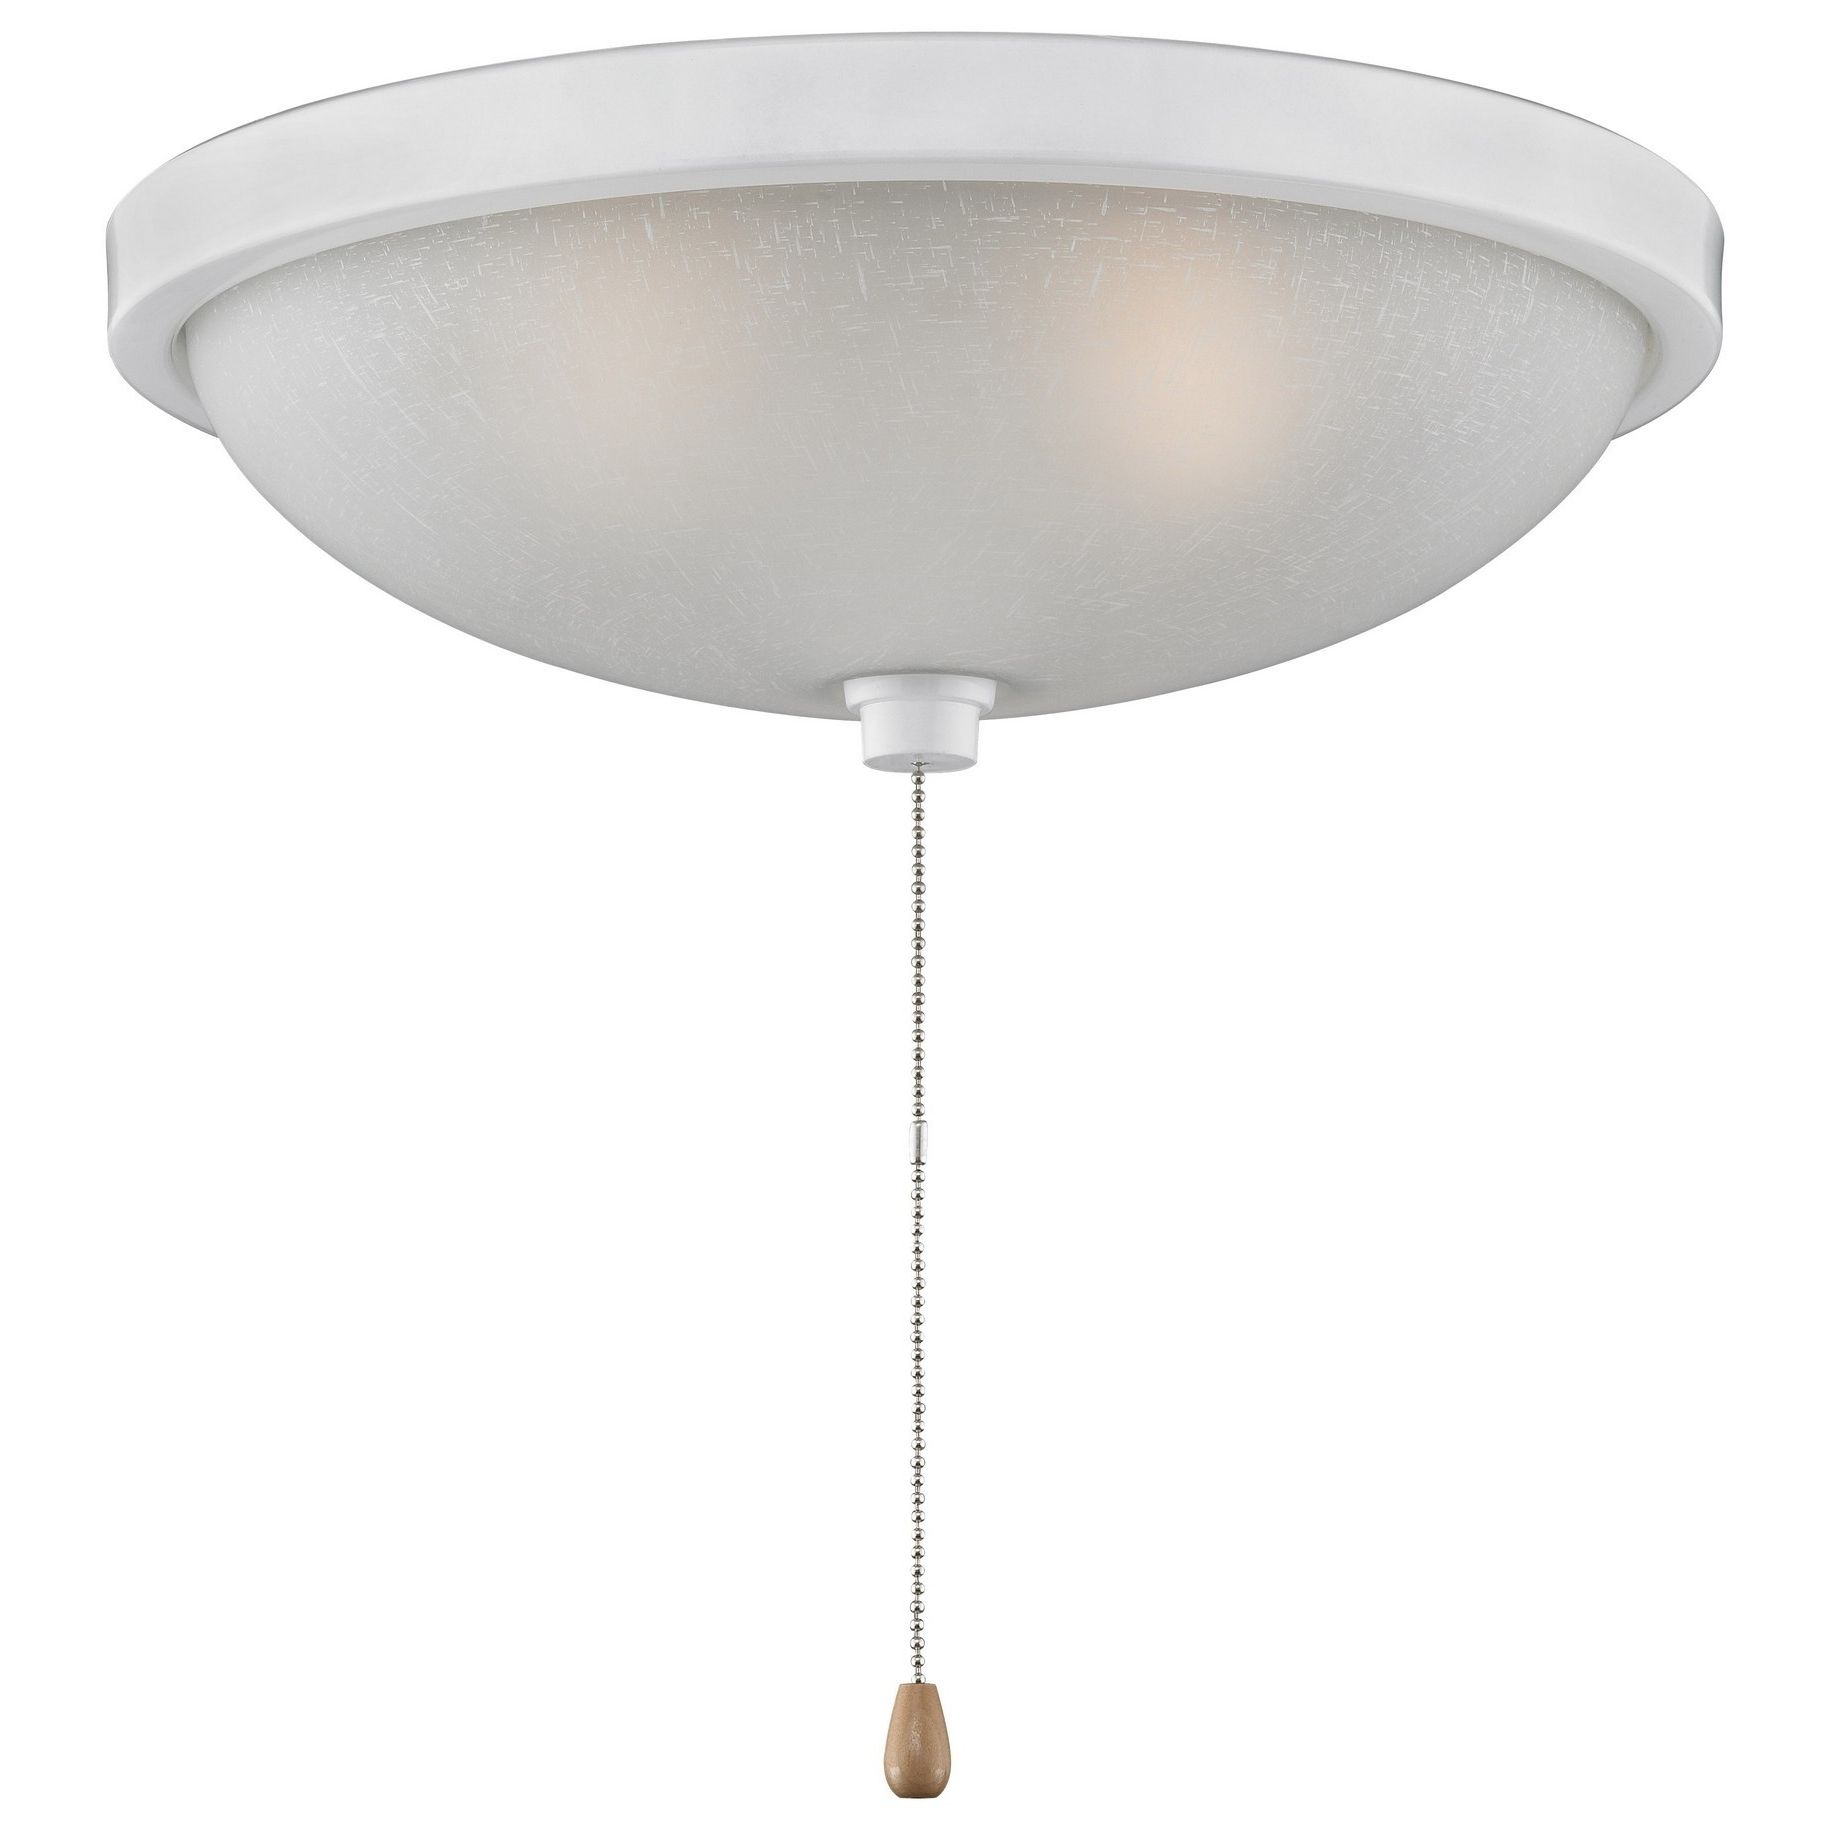 Pull Chain Ceiling Light Best With Switch On Outdoor Fans Fan For 2019